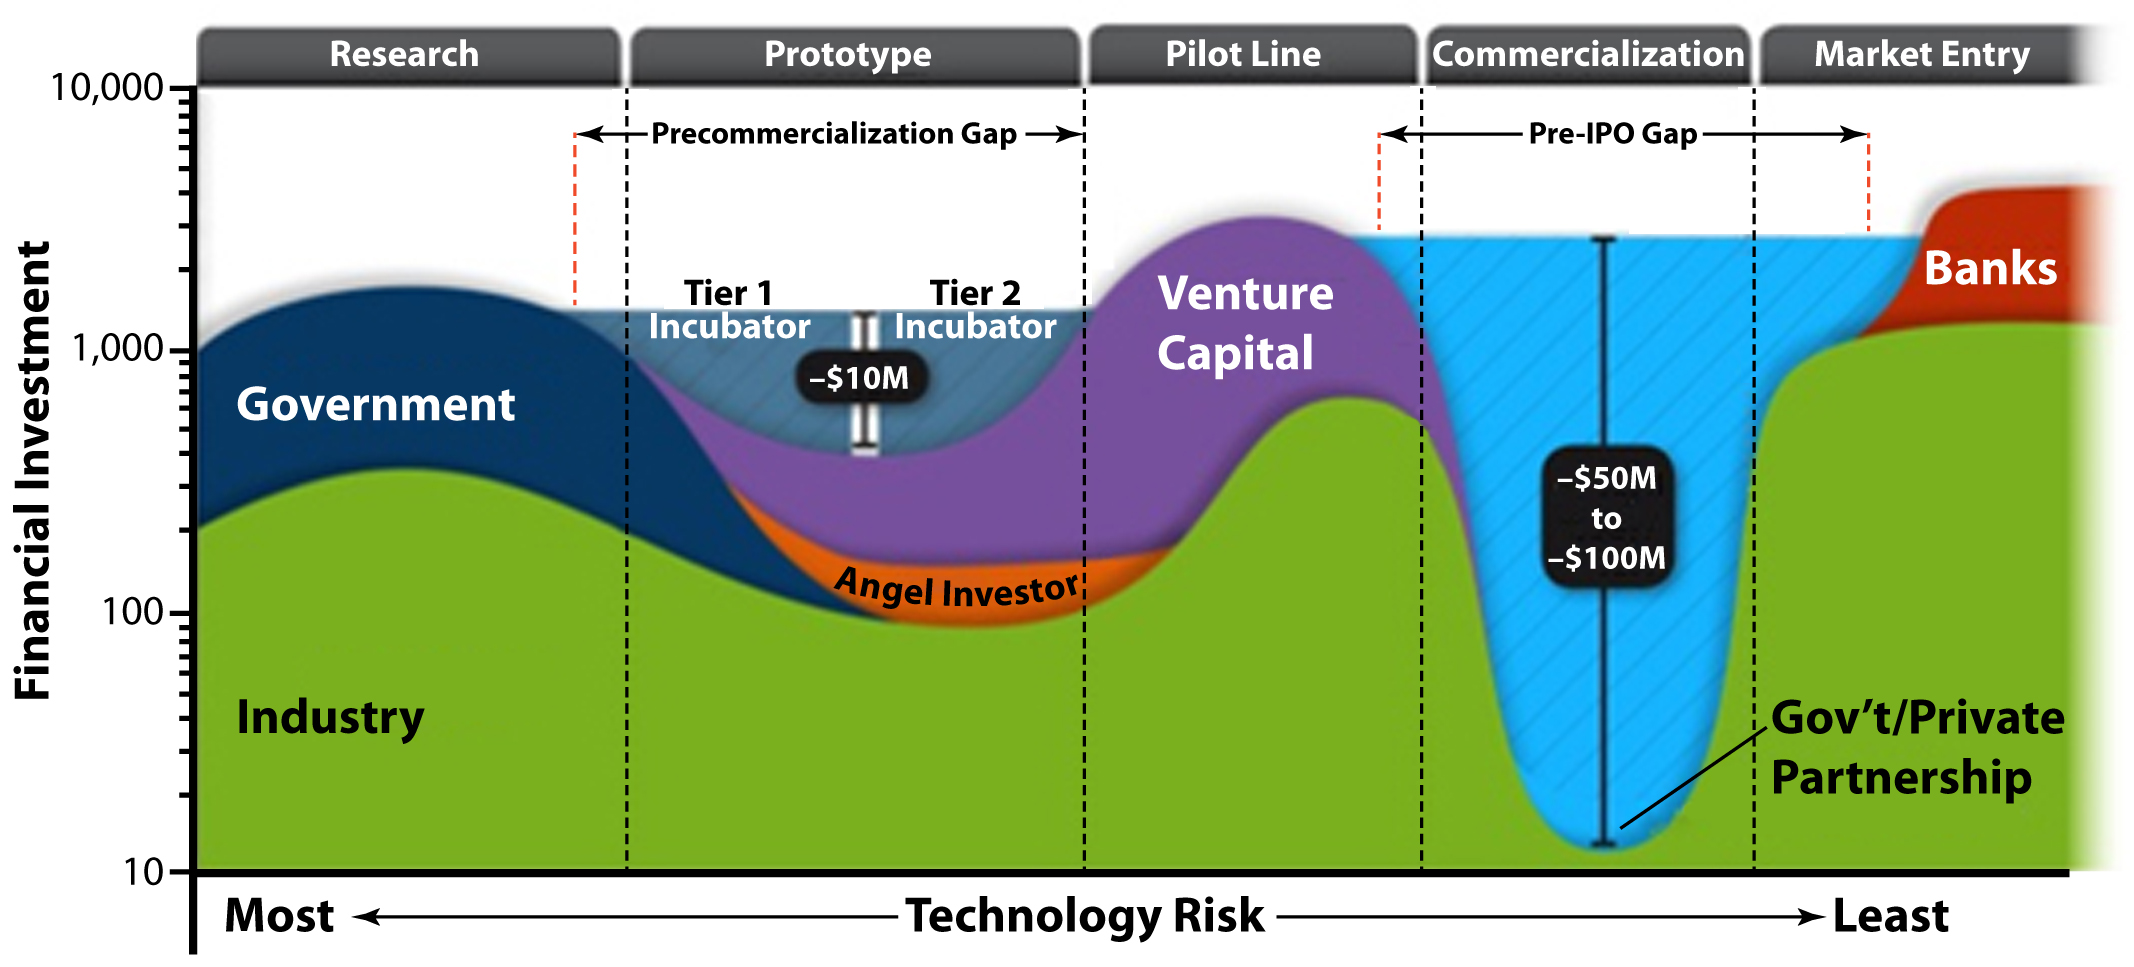 """To maintain U.S. competitiveness, the DOE recognizes that more must be done to help companies developing new technologies cross the second """"Valley of Death""""—the lack of capital resources required to demonstrate the large-scale manufacturing and economic viability and reliability (or """"bankability"""") of a particular technology pathway. The RTCs will develop and test processes and procedures for implementing a validation program that will assist new PV technologies/industry cross this """"Pre-IPO Gap."""""""